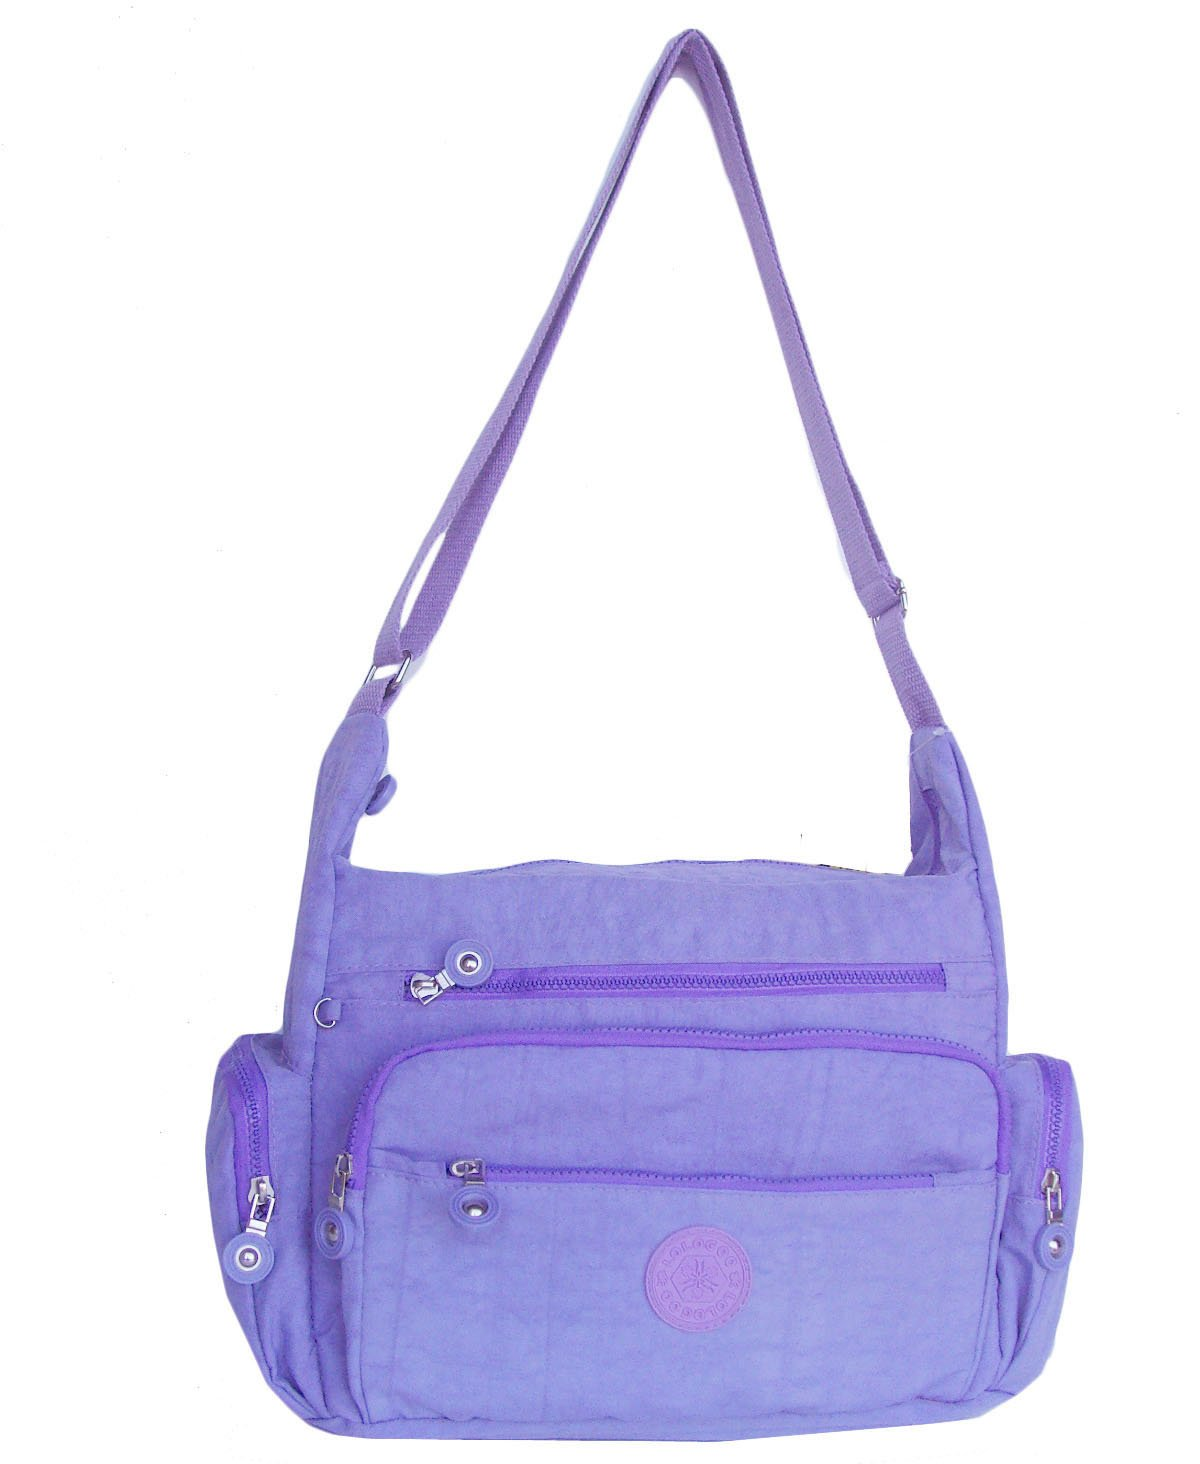 HONG YE Pure Stripe Slouch Bag,sku:hb78purple3